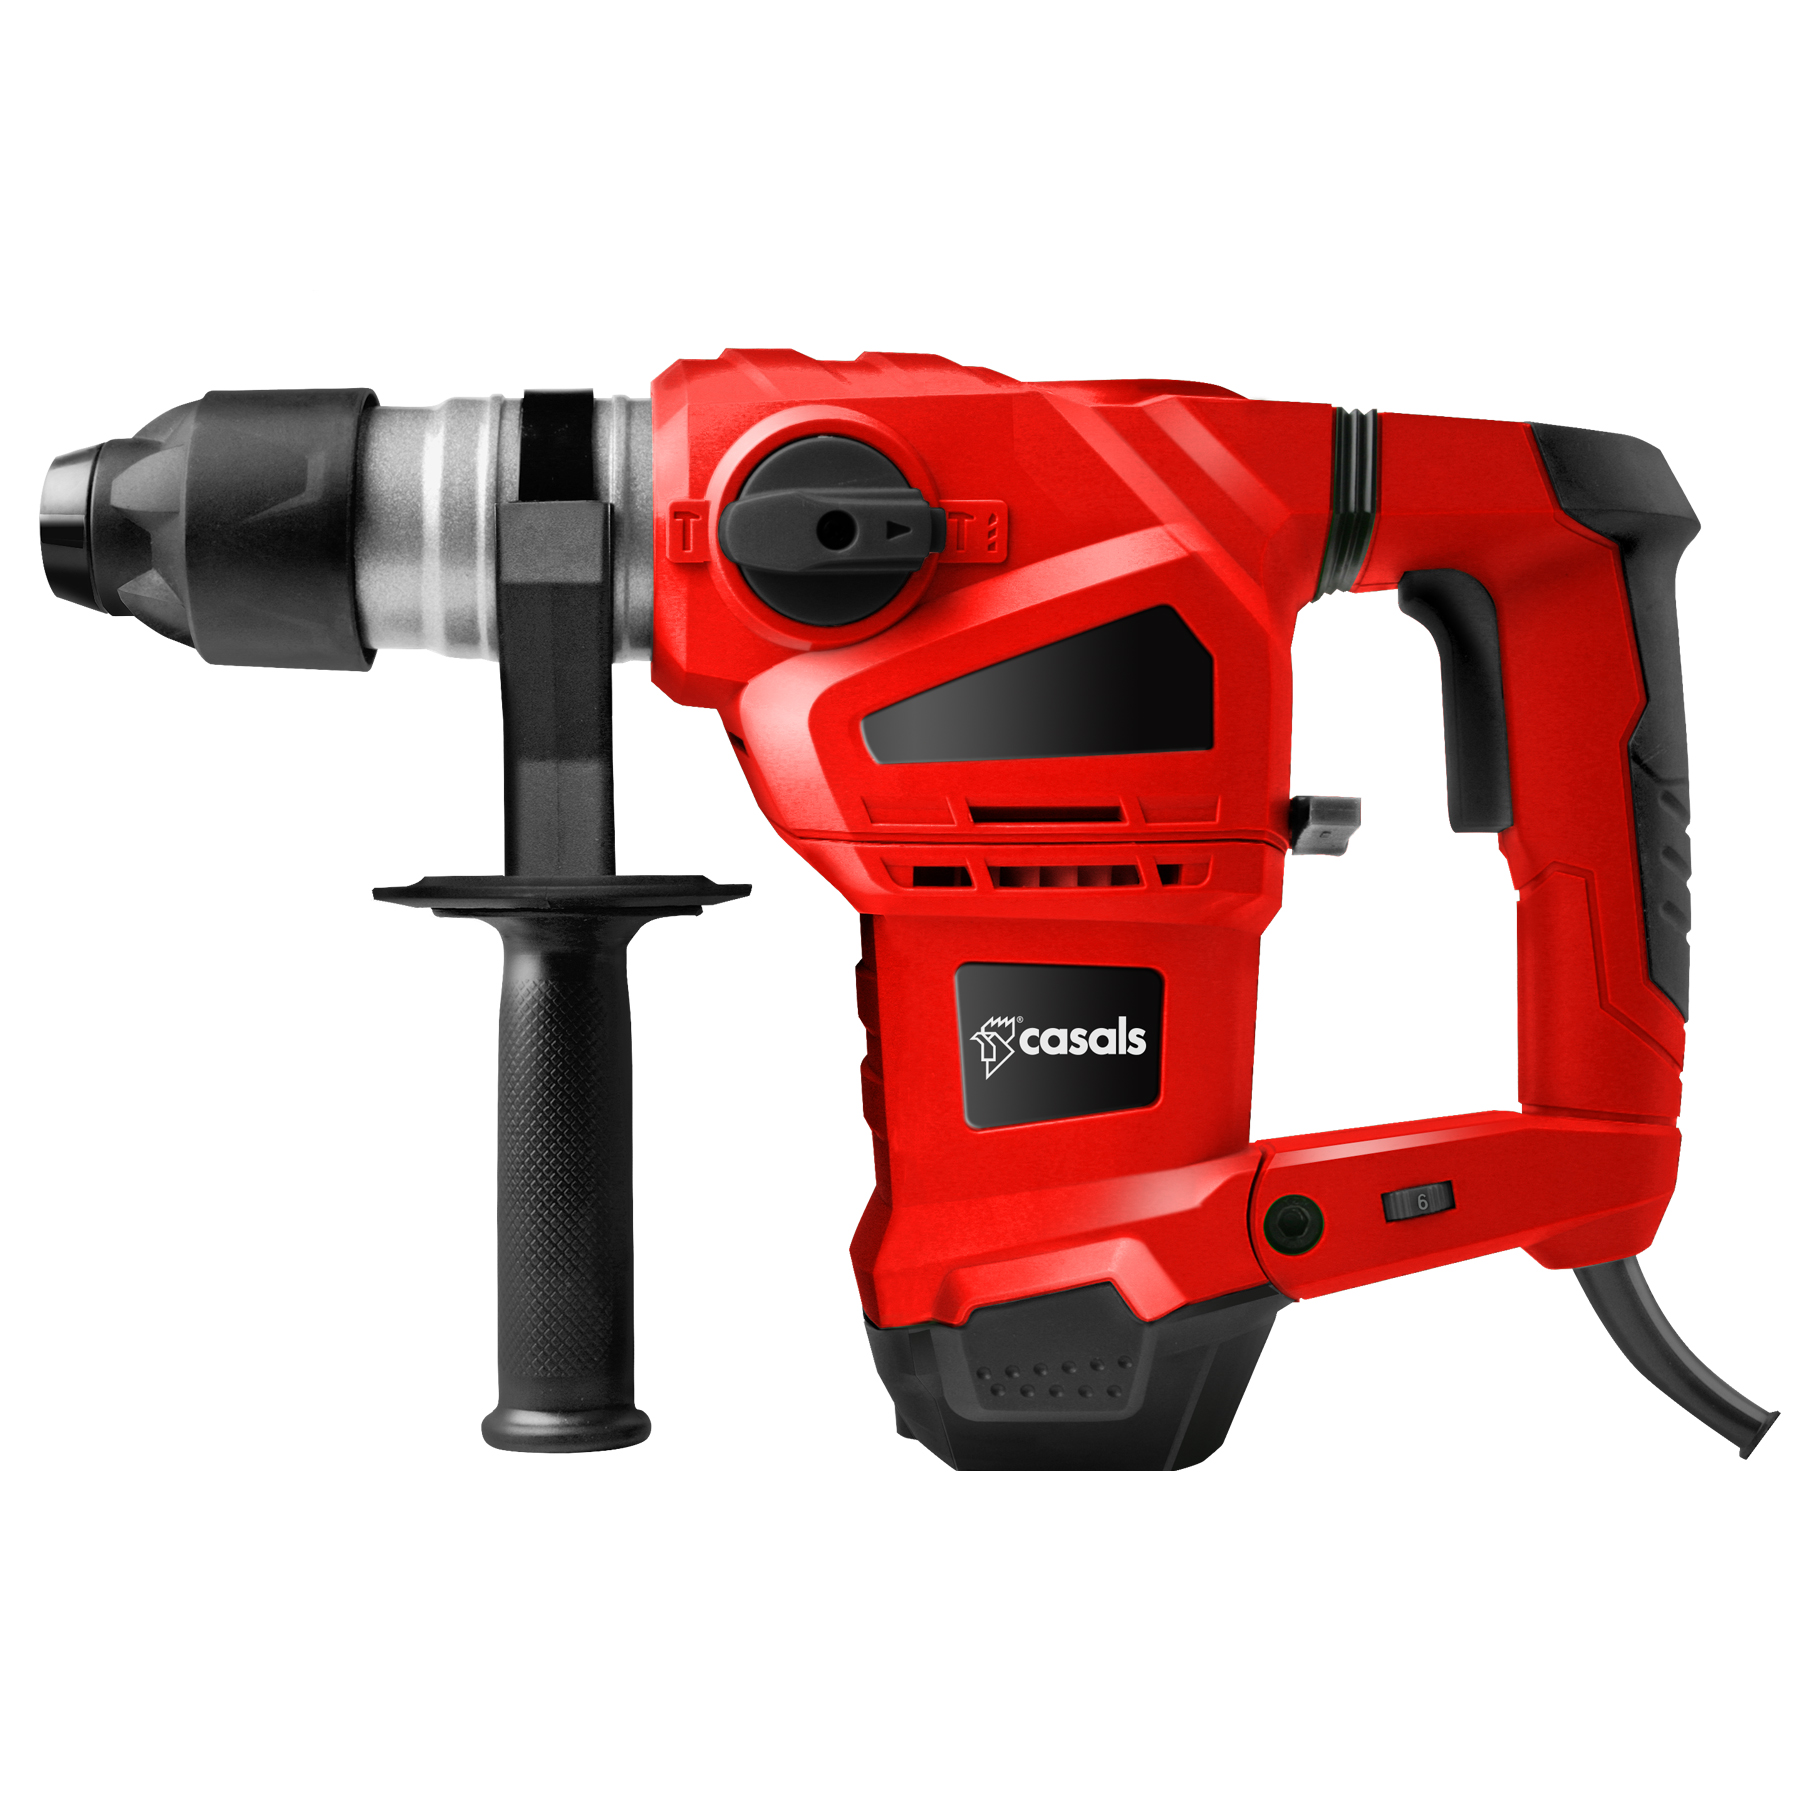 Casals Drill Rotary Hammer With Auxiliary Handle Plastic Red 3 Function 1